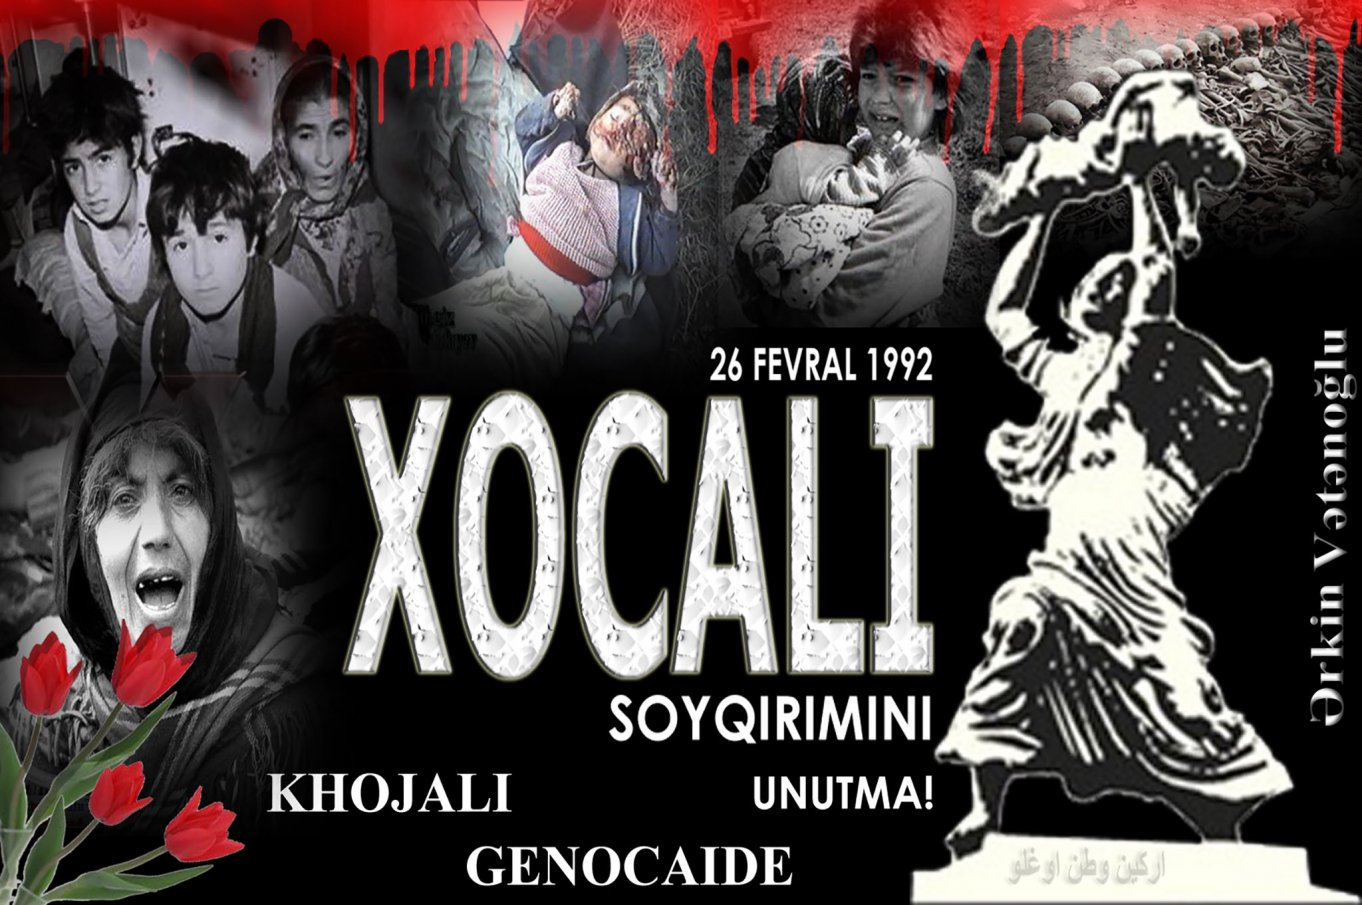 The News: The Khojaly genocide